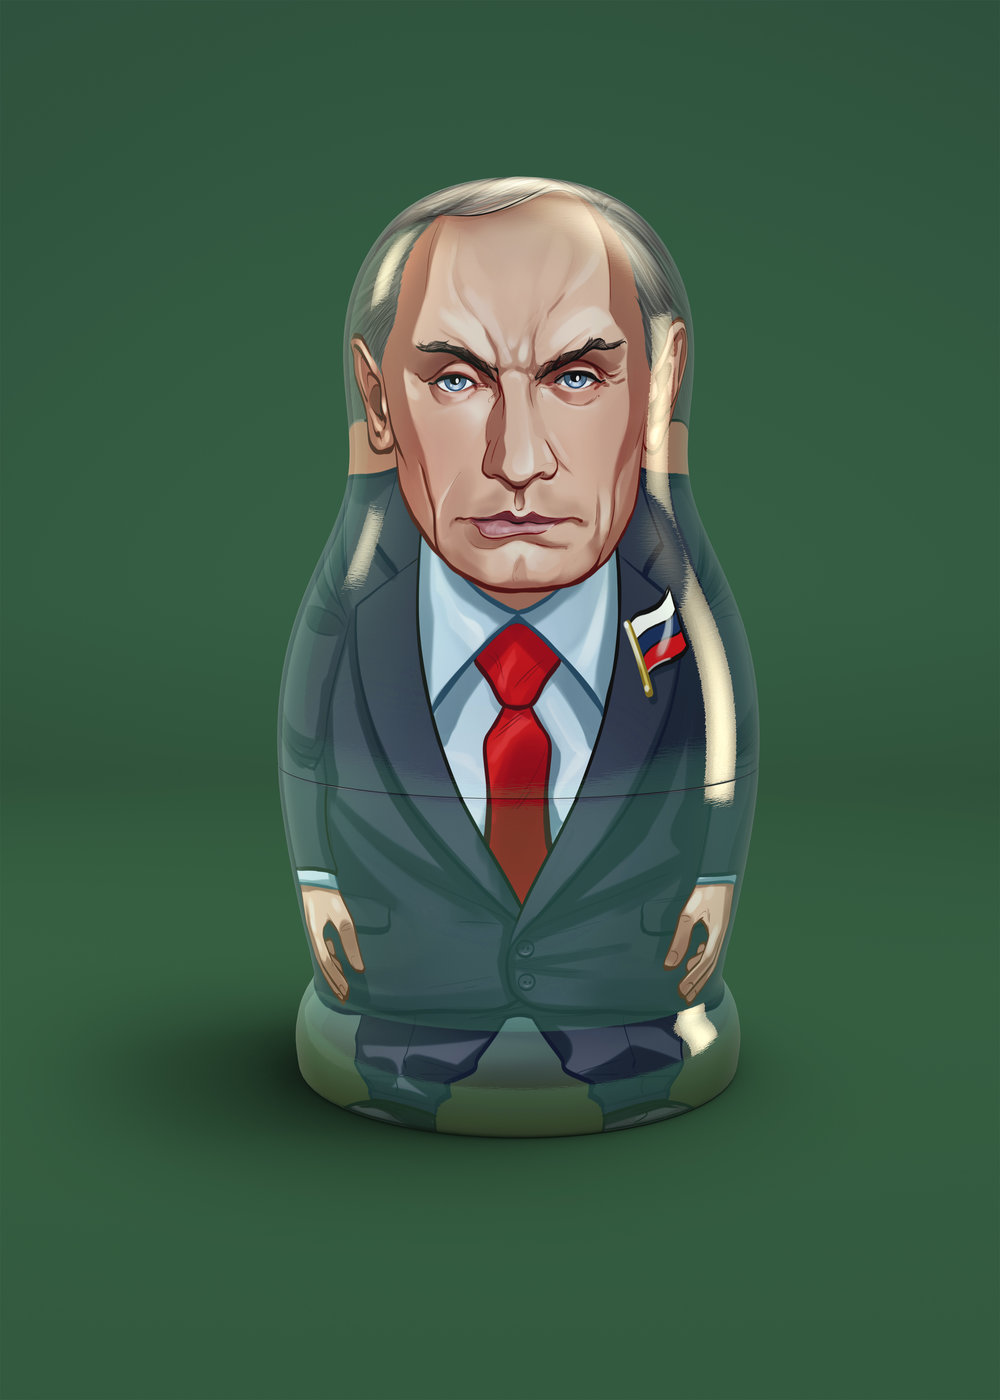 Putin+layers+to+client.jpg